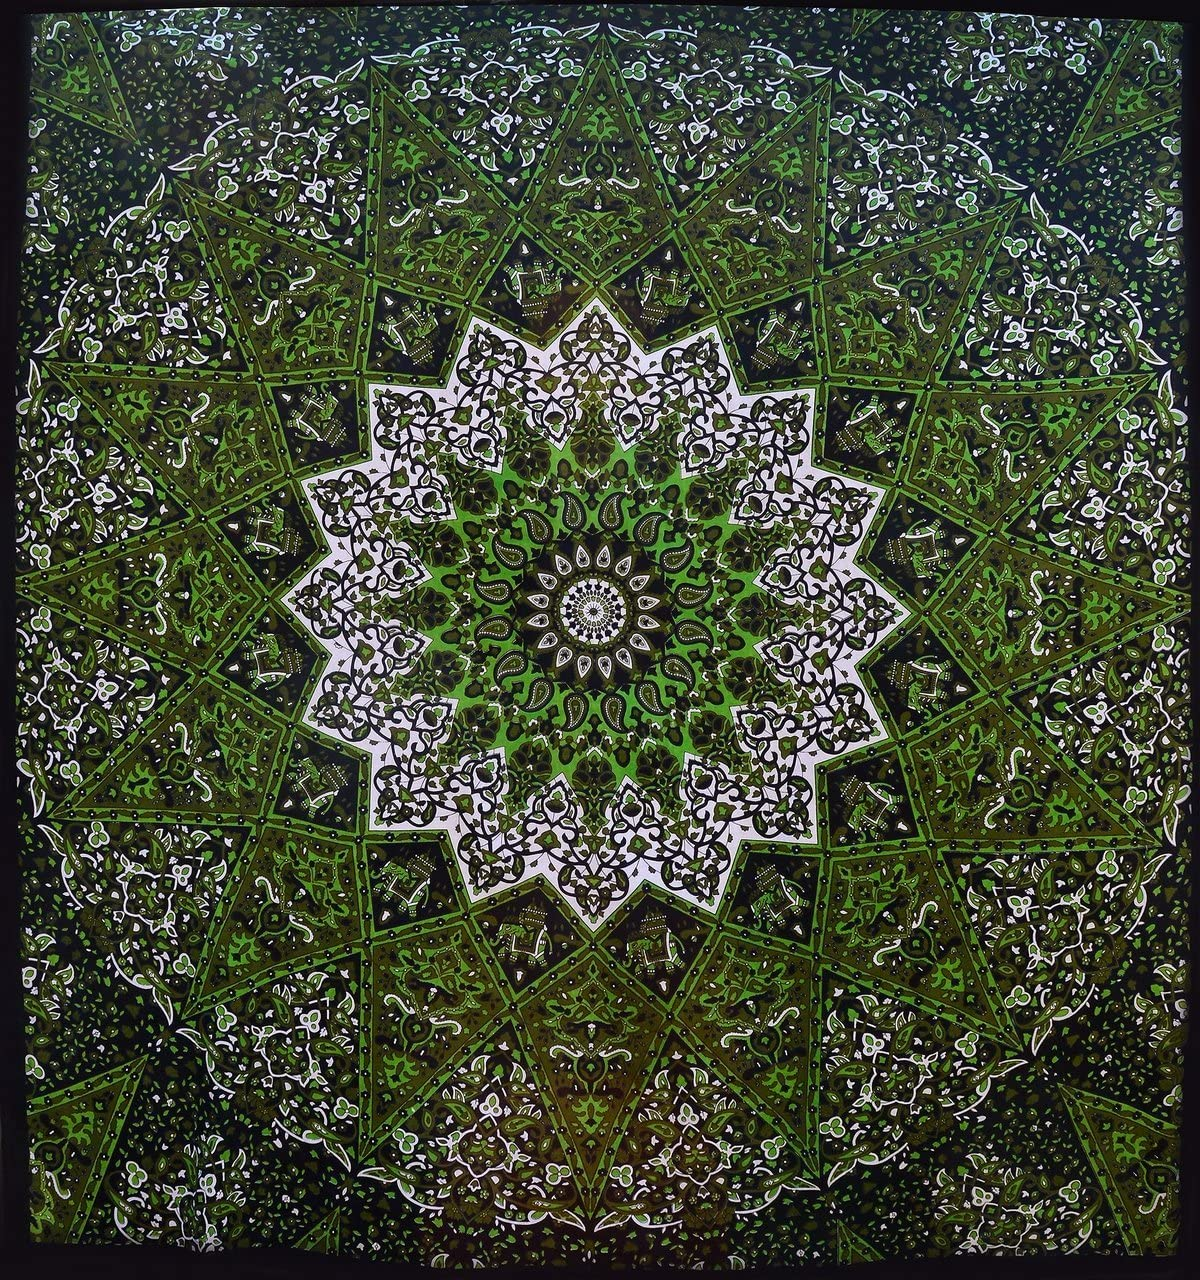 Popular Psychedelic Mandala Hippie Tapestry Indian Wall Hanging Bedspread 84×90 Inches 215x230cms